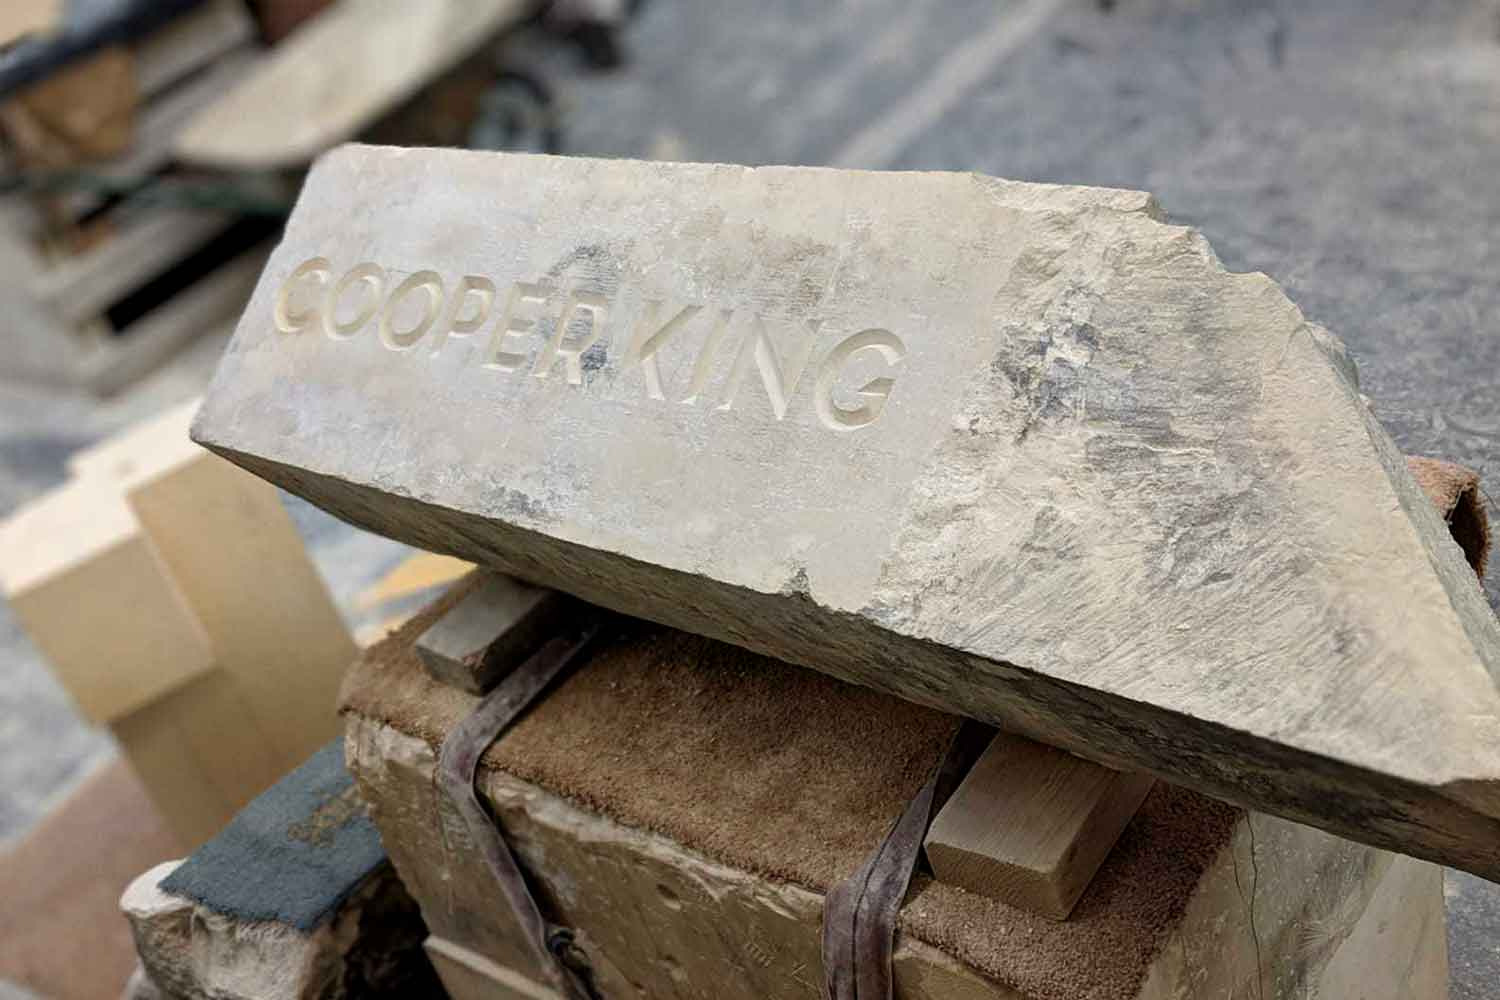 cooper-king-distillery-york-minster-stone-workshop.jpg